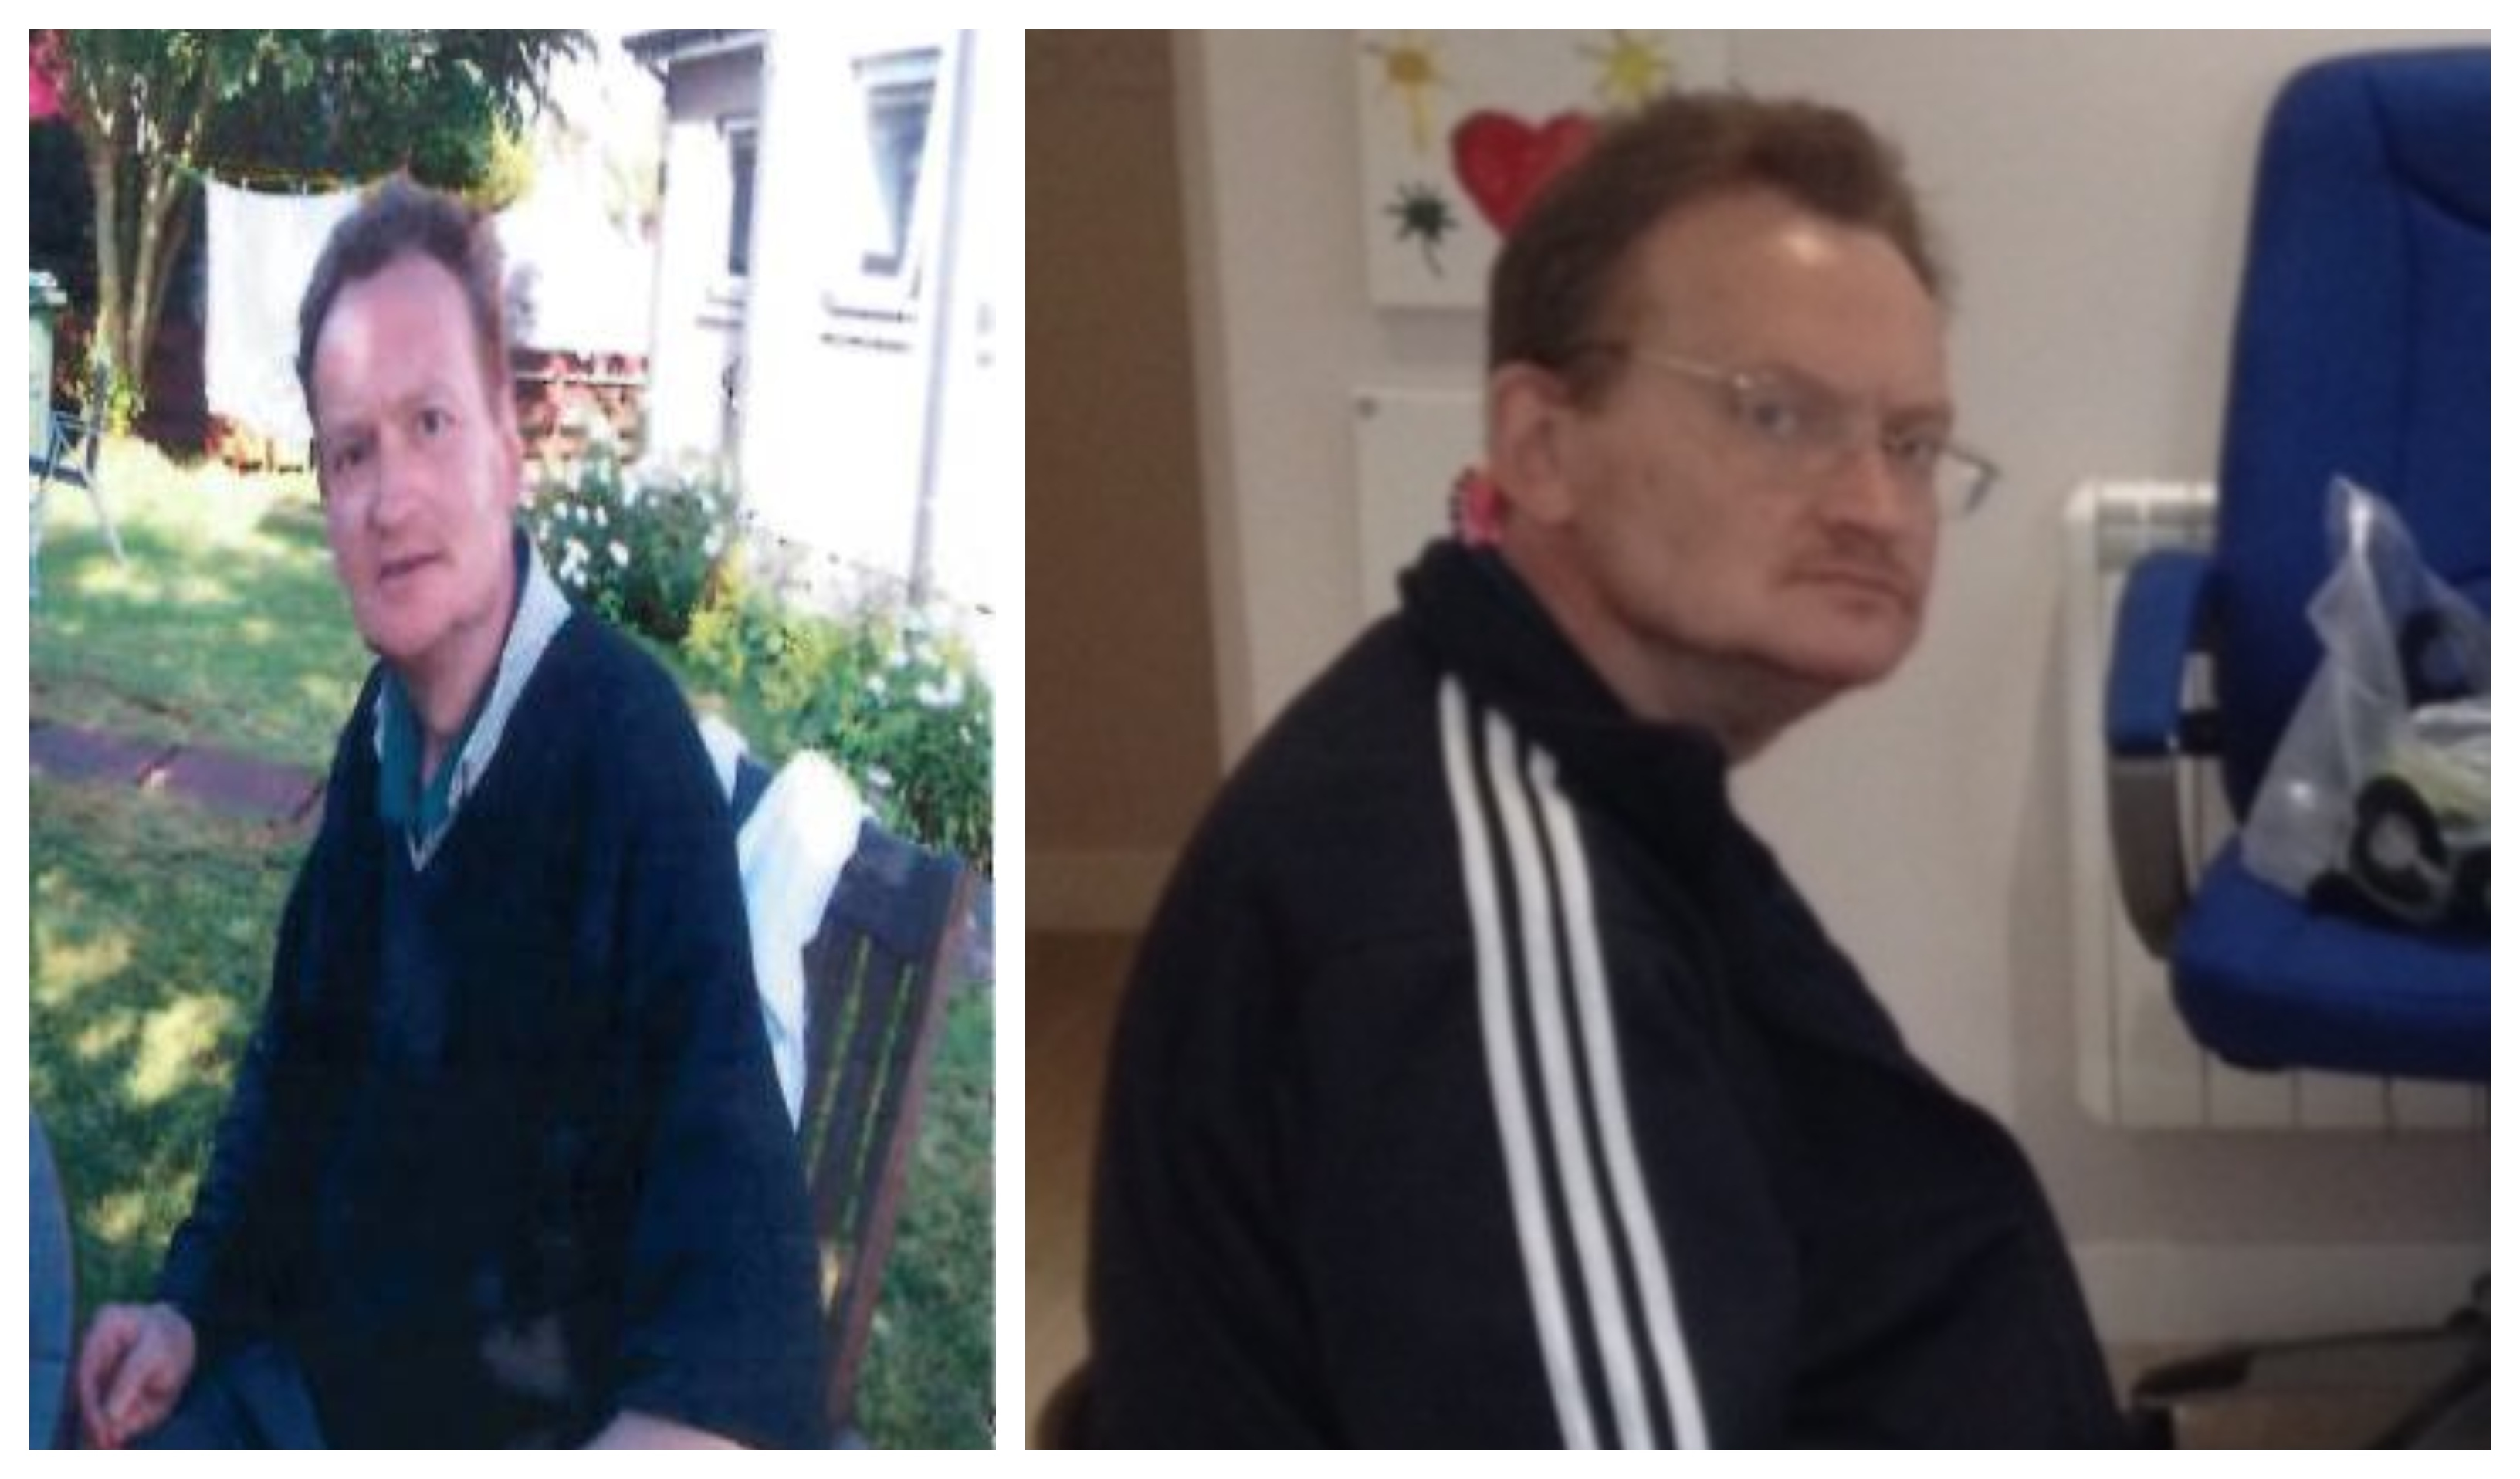 Police were becoming increasingly concerned for missing Alford man Alec Bain, 51, who had not been seen since Wednesday